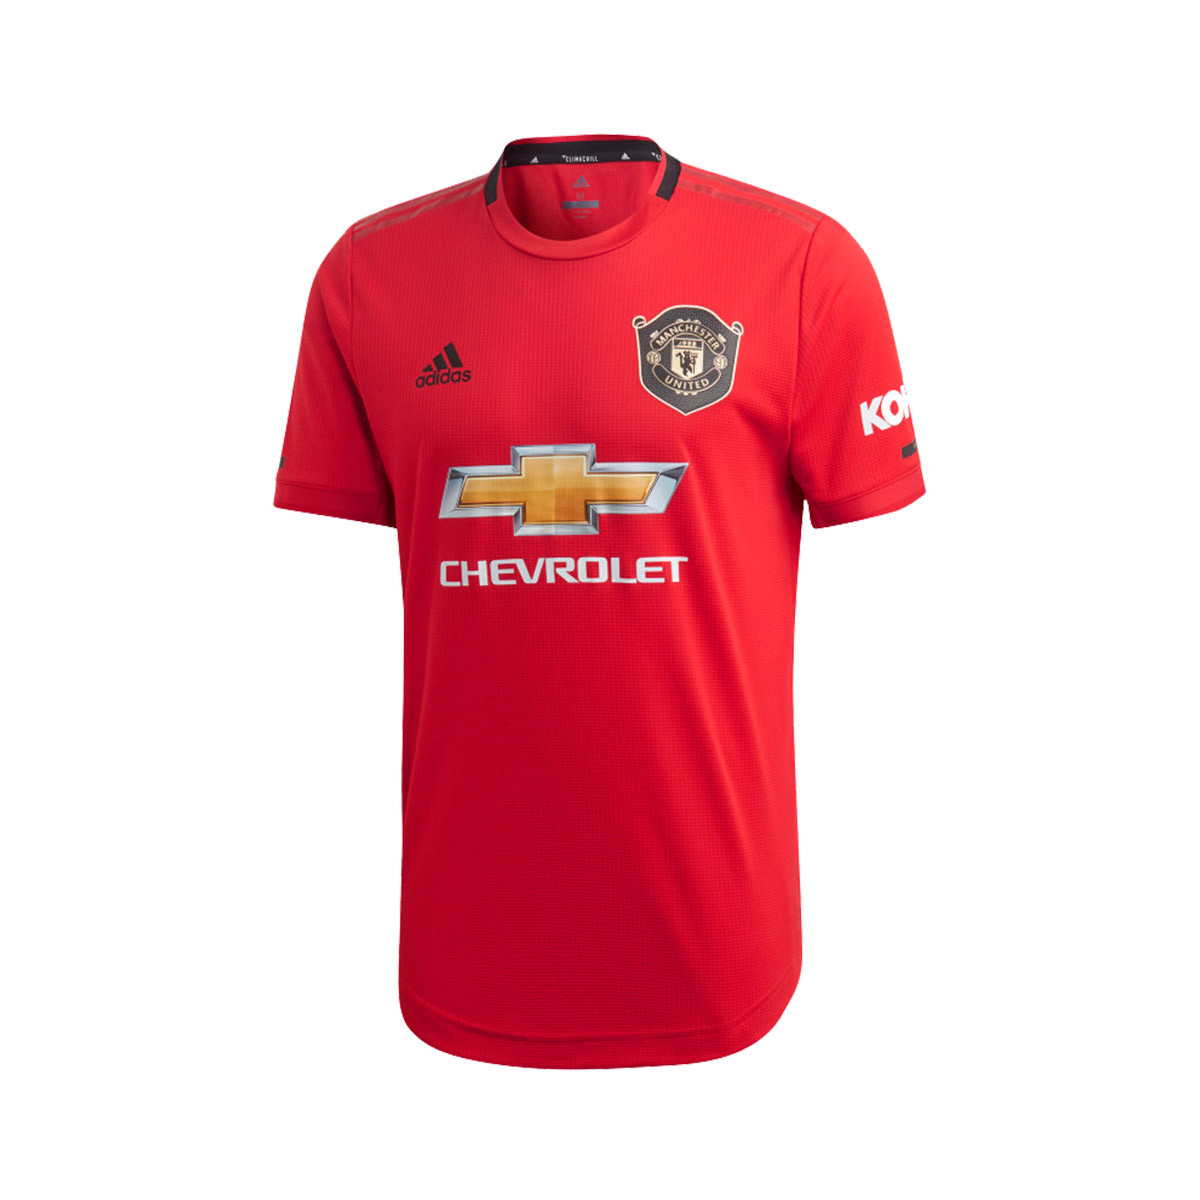 playera adidas manchester united fc authentic primera equipacion 2019 2020 real red tienda de futbol futbol emotion playera adidas manchester united fc authentic primera equipacion 2019 2020